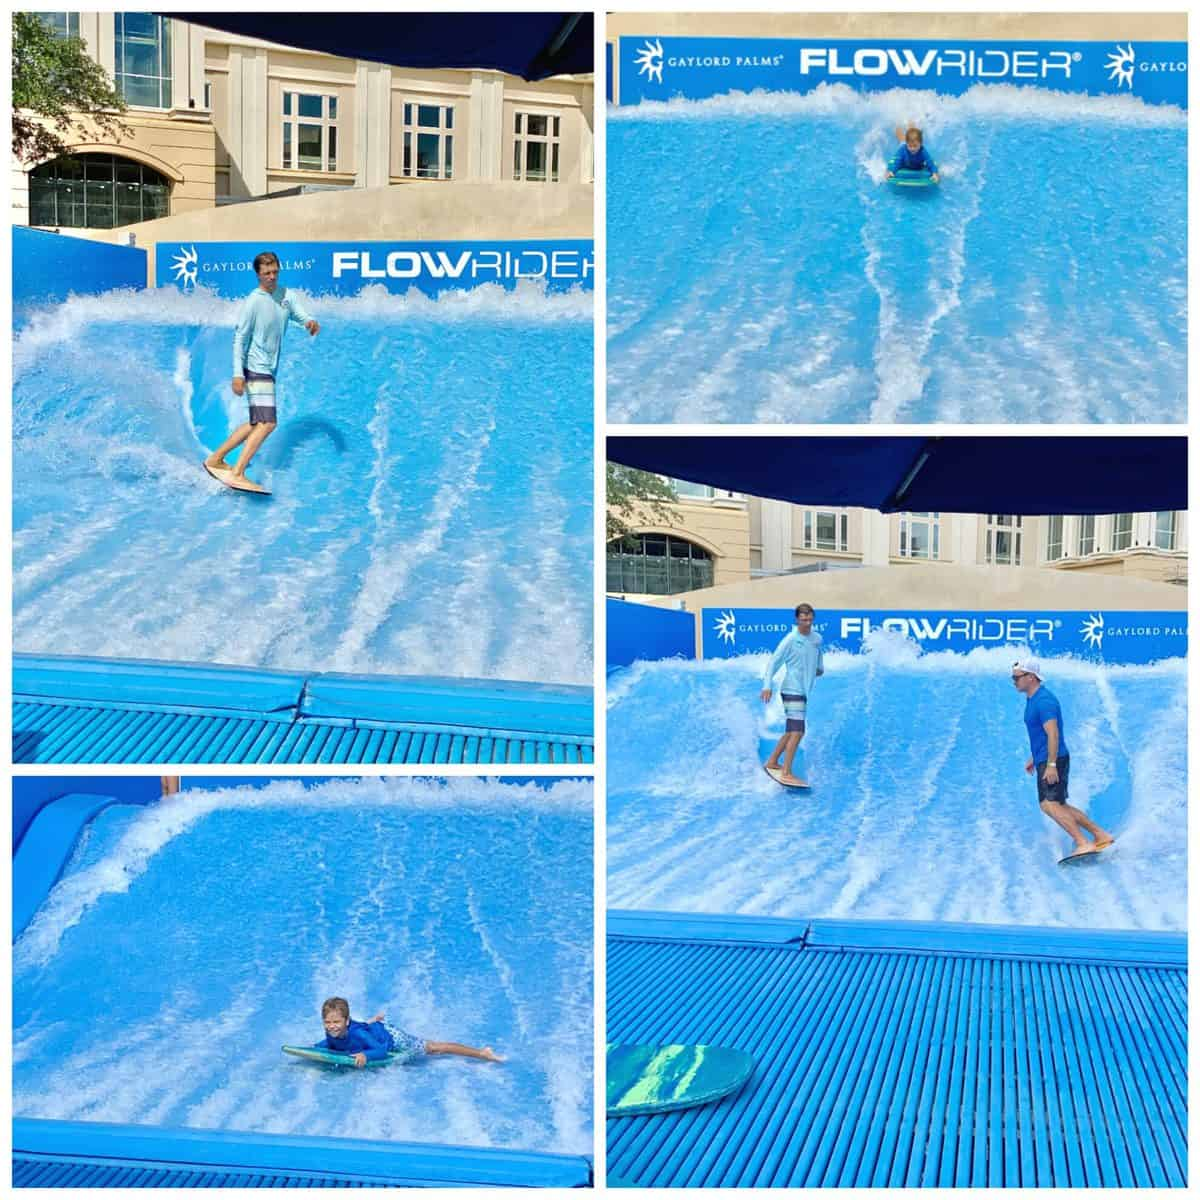 Four different photos of 2 men surfing on a FlowRider and a little boy body boarding.